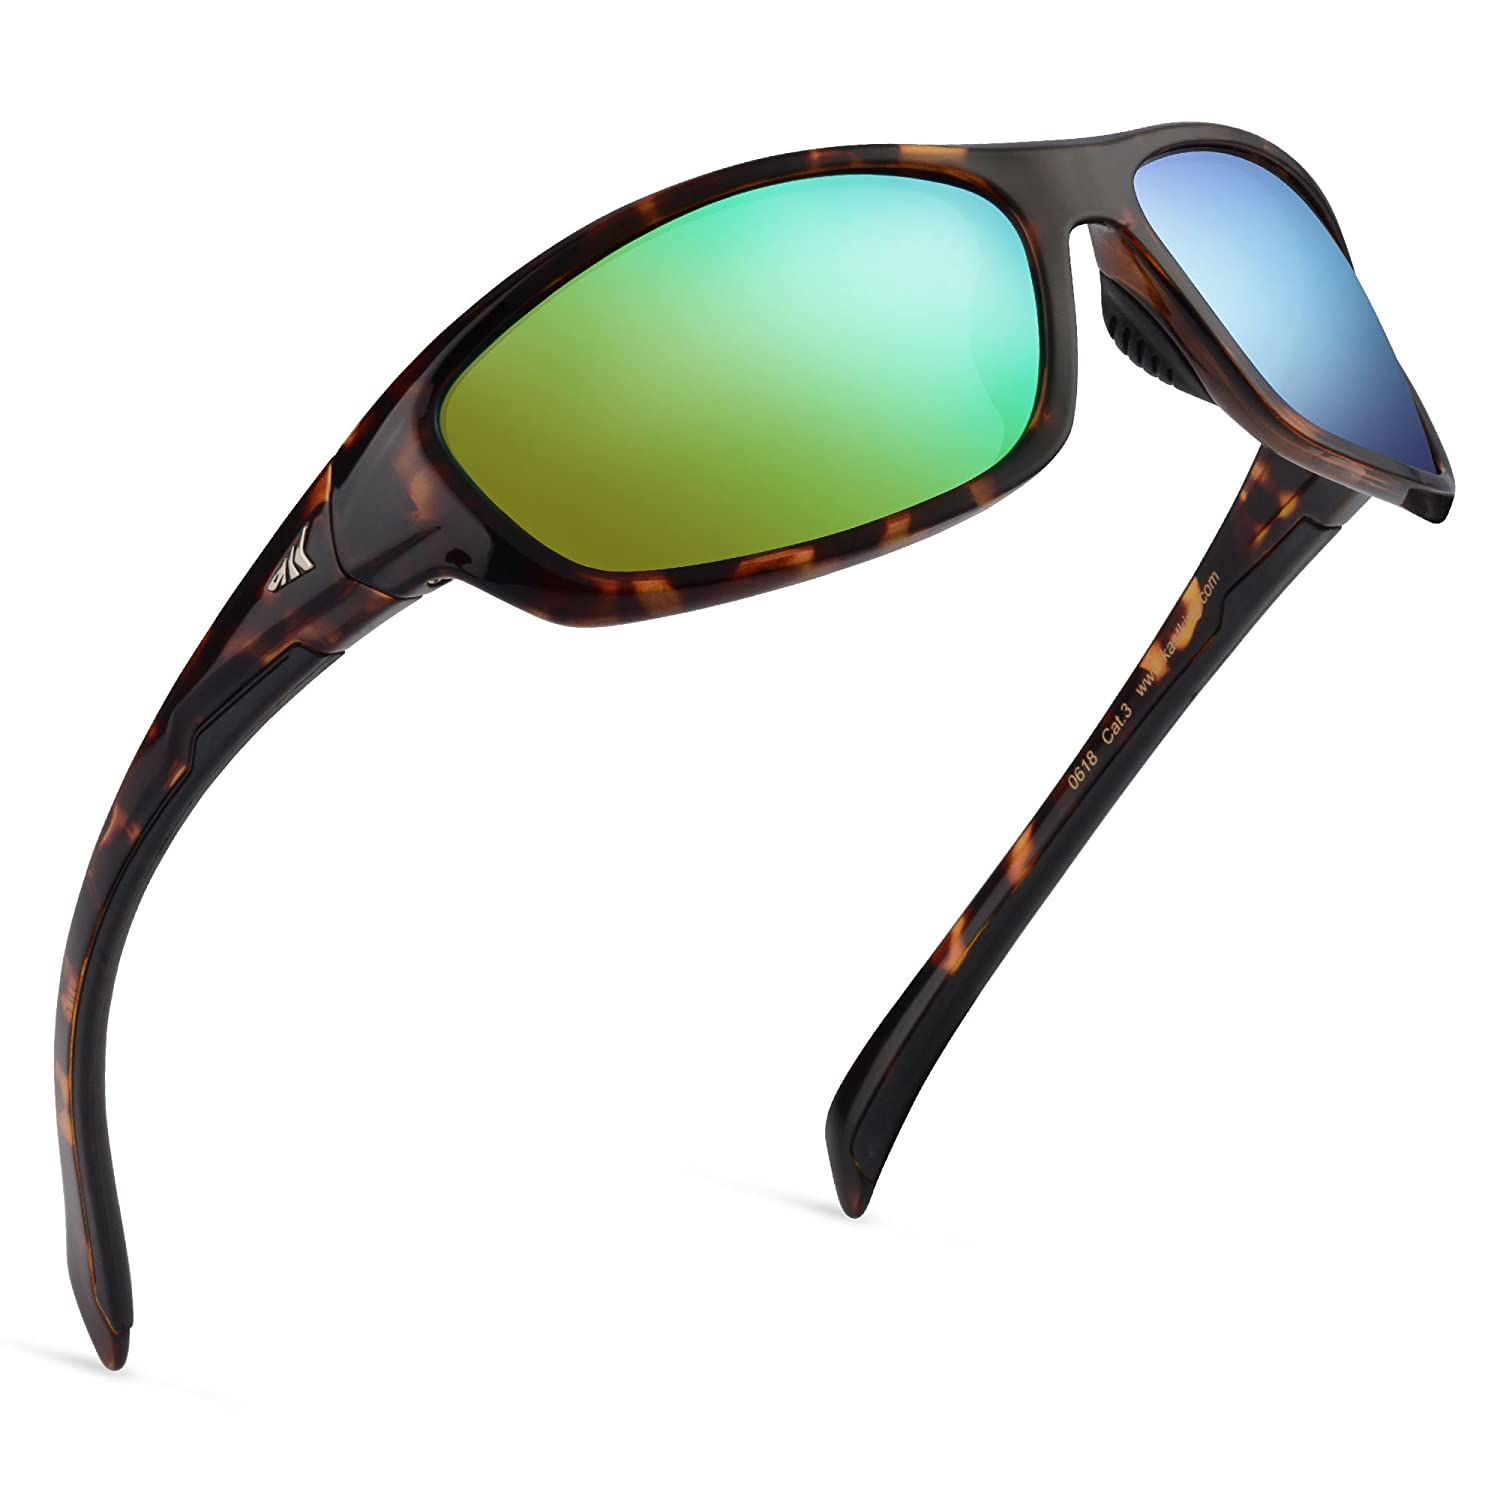 KastKing Hiwassee Polarized Sport Fishing Sunglasses under $50